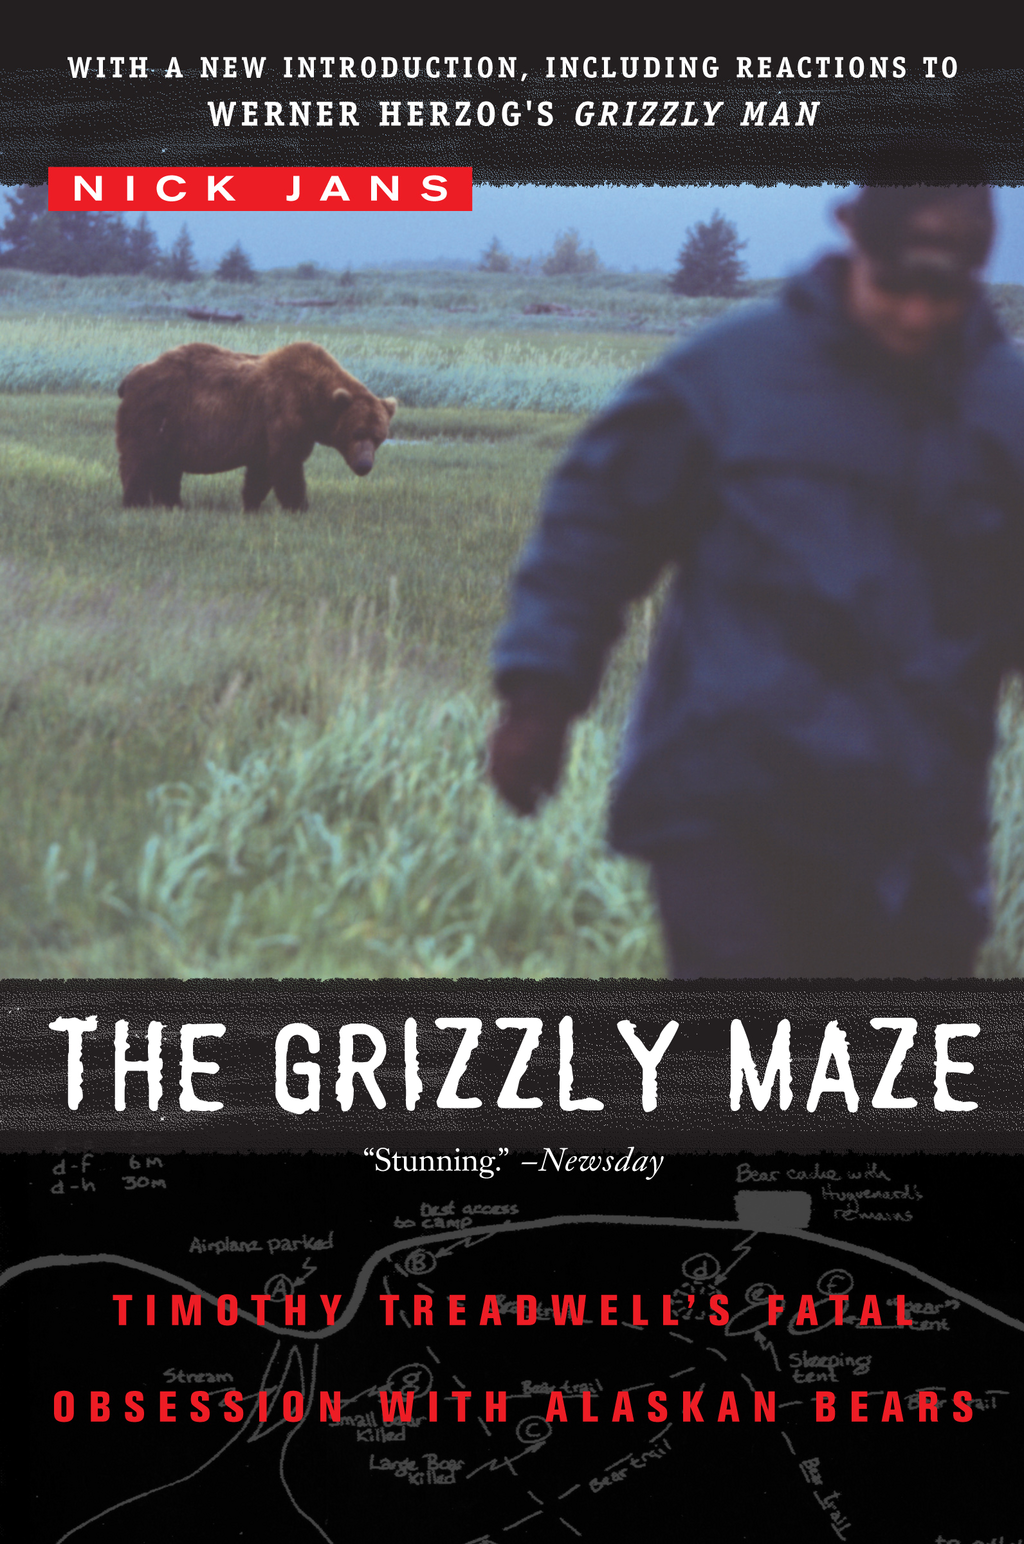 The Grizzly Maze Timothy Treadwell's Fatal Obsession with Alaskan Bears